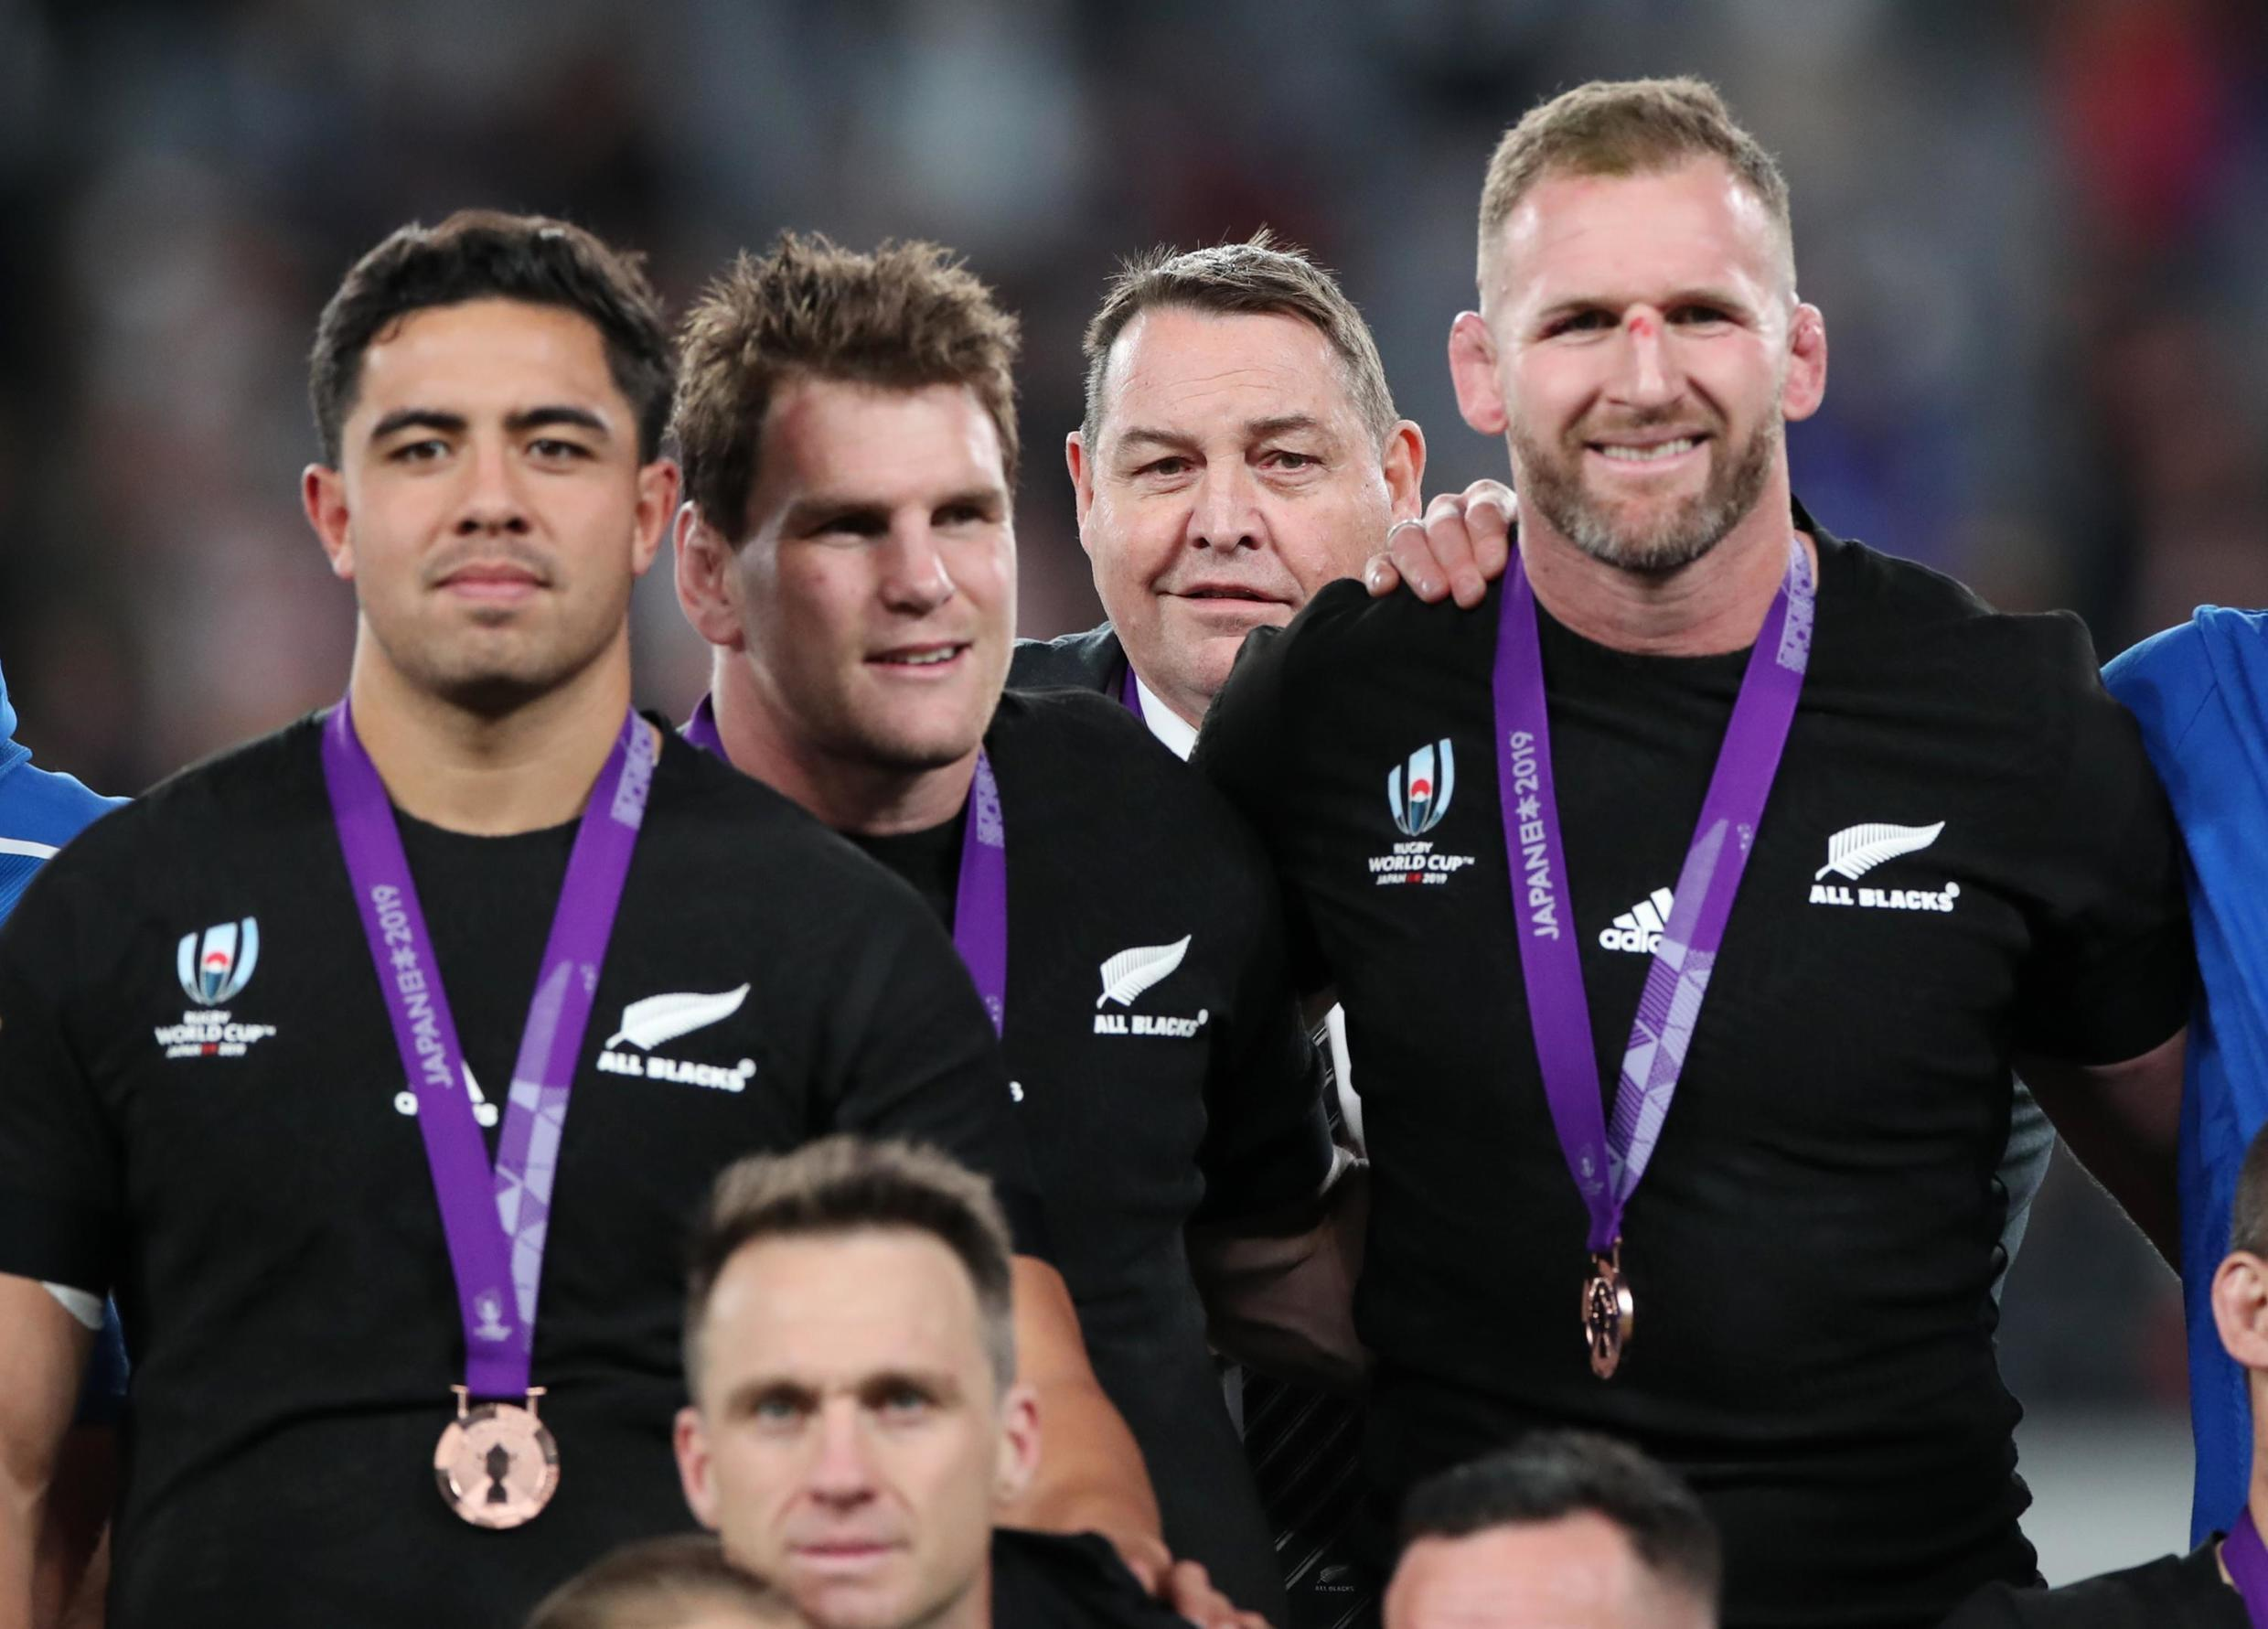 New Zealand head coach Steve Hansen and the All Blacks celebrate their bronze medals at the Rugby World Cup, Tokyo, Japan, 1 November 2019.